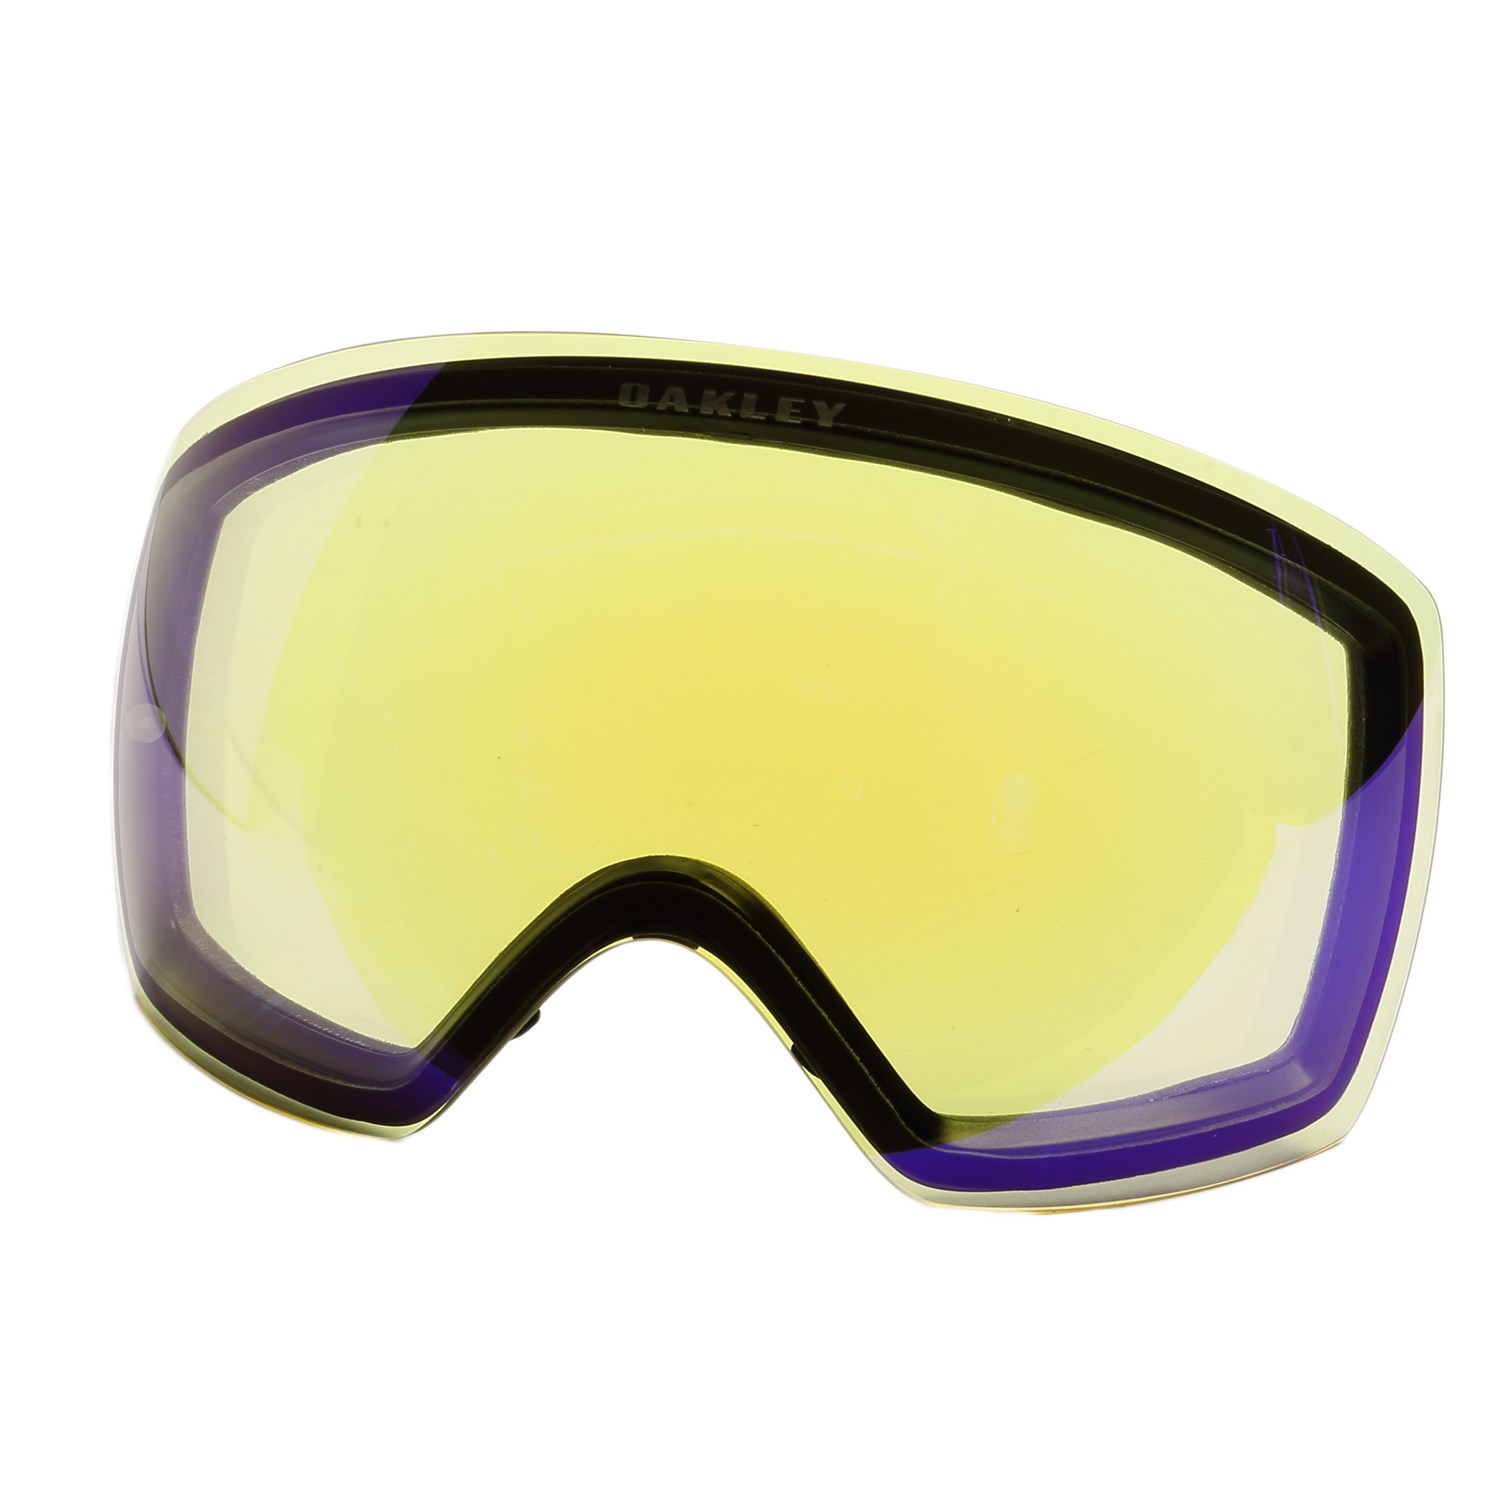 Oakley Yellow Lens